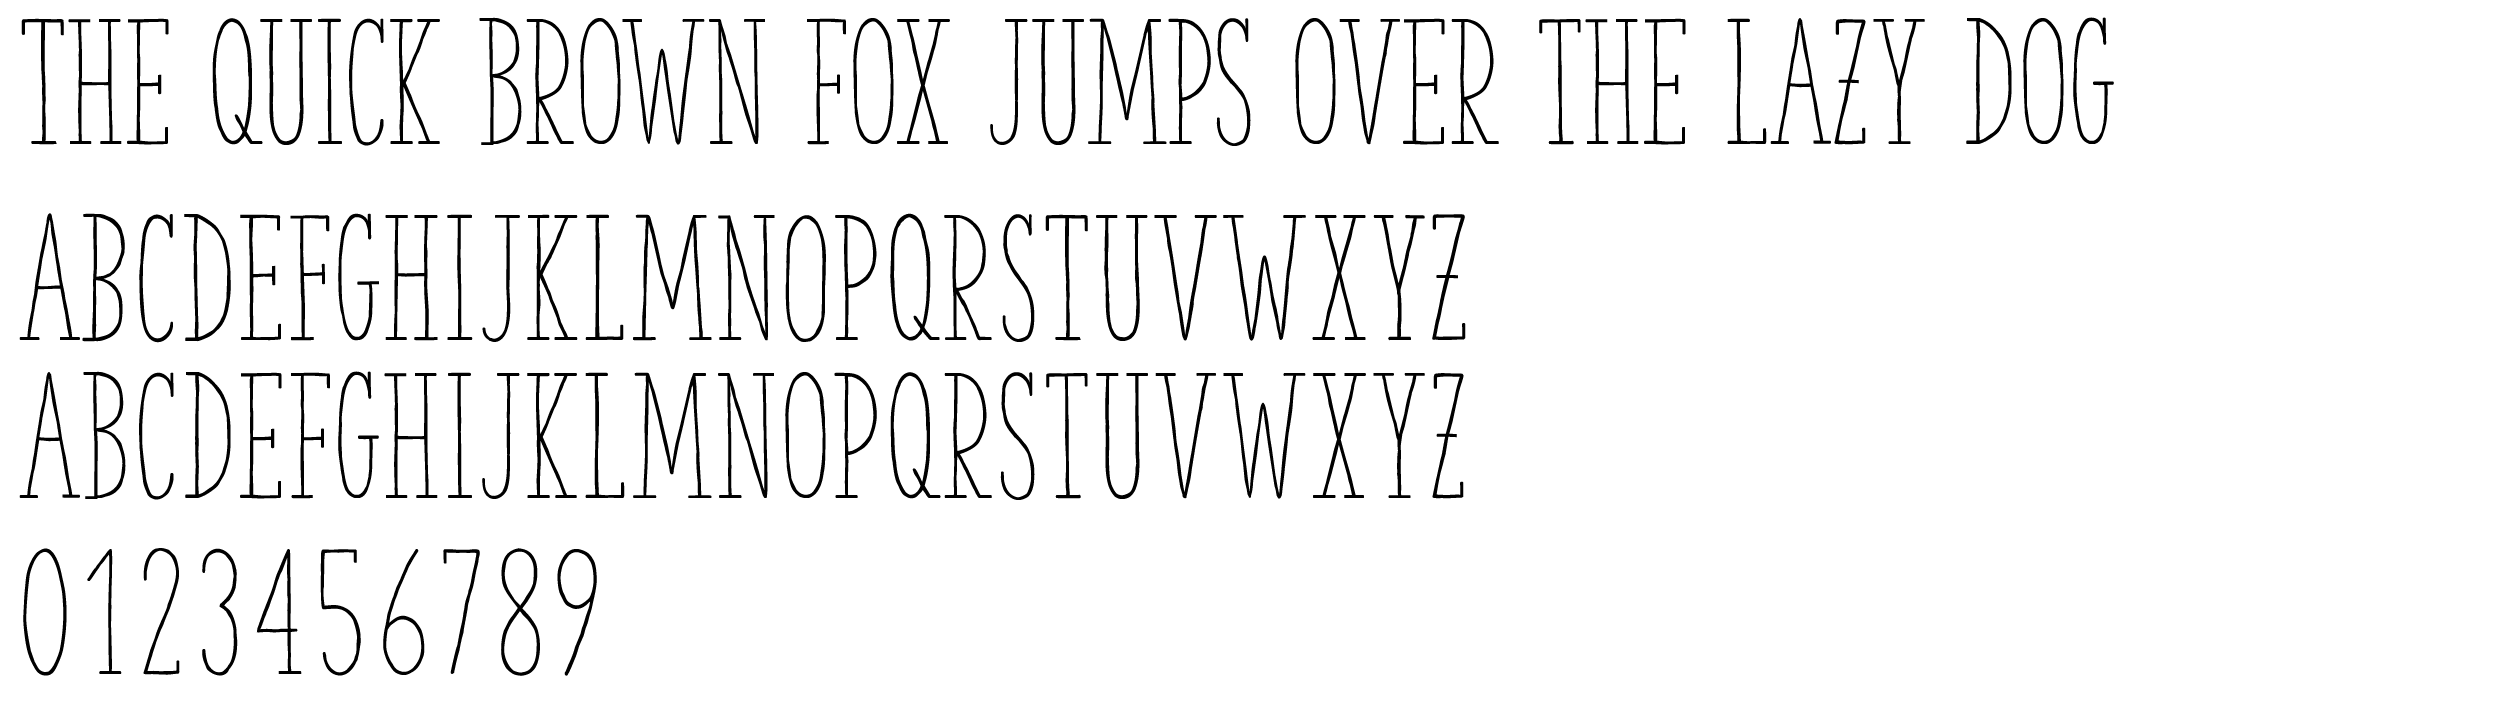 The Hand Serif Regular